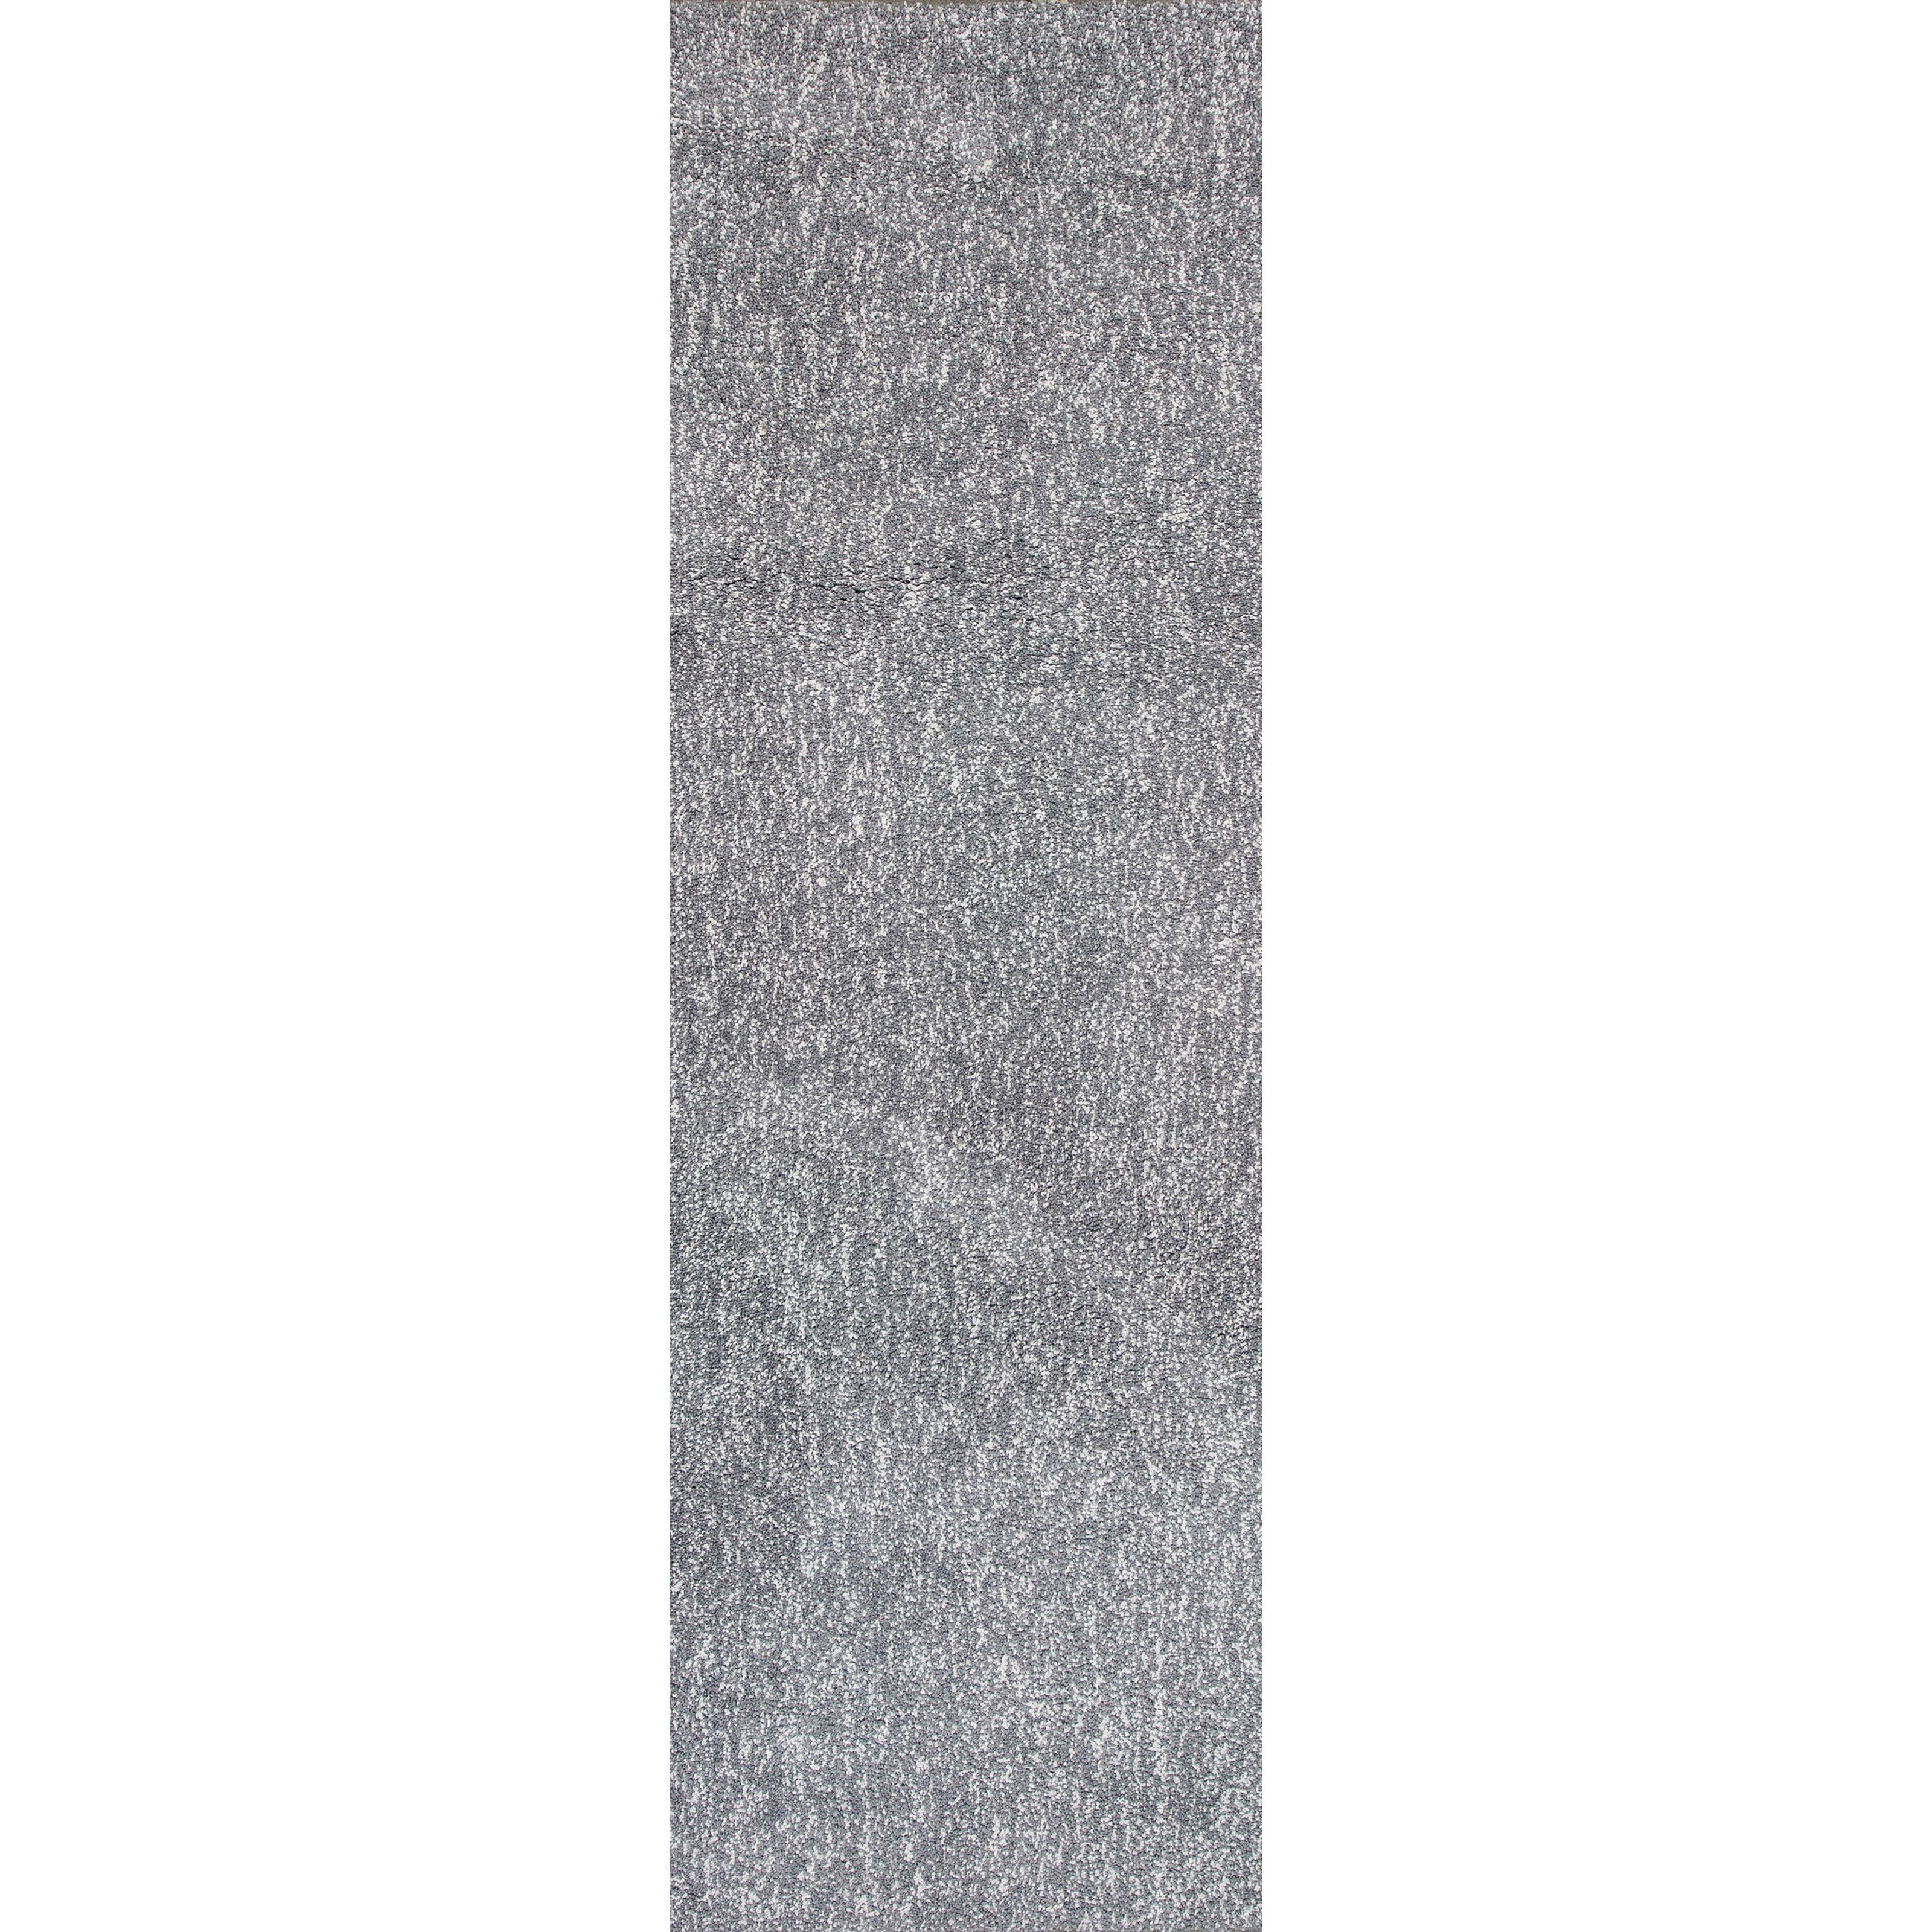 "2'3"" X 7'6"" Grey Heather Shag Area Rug"